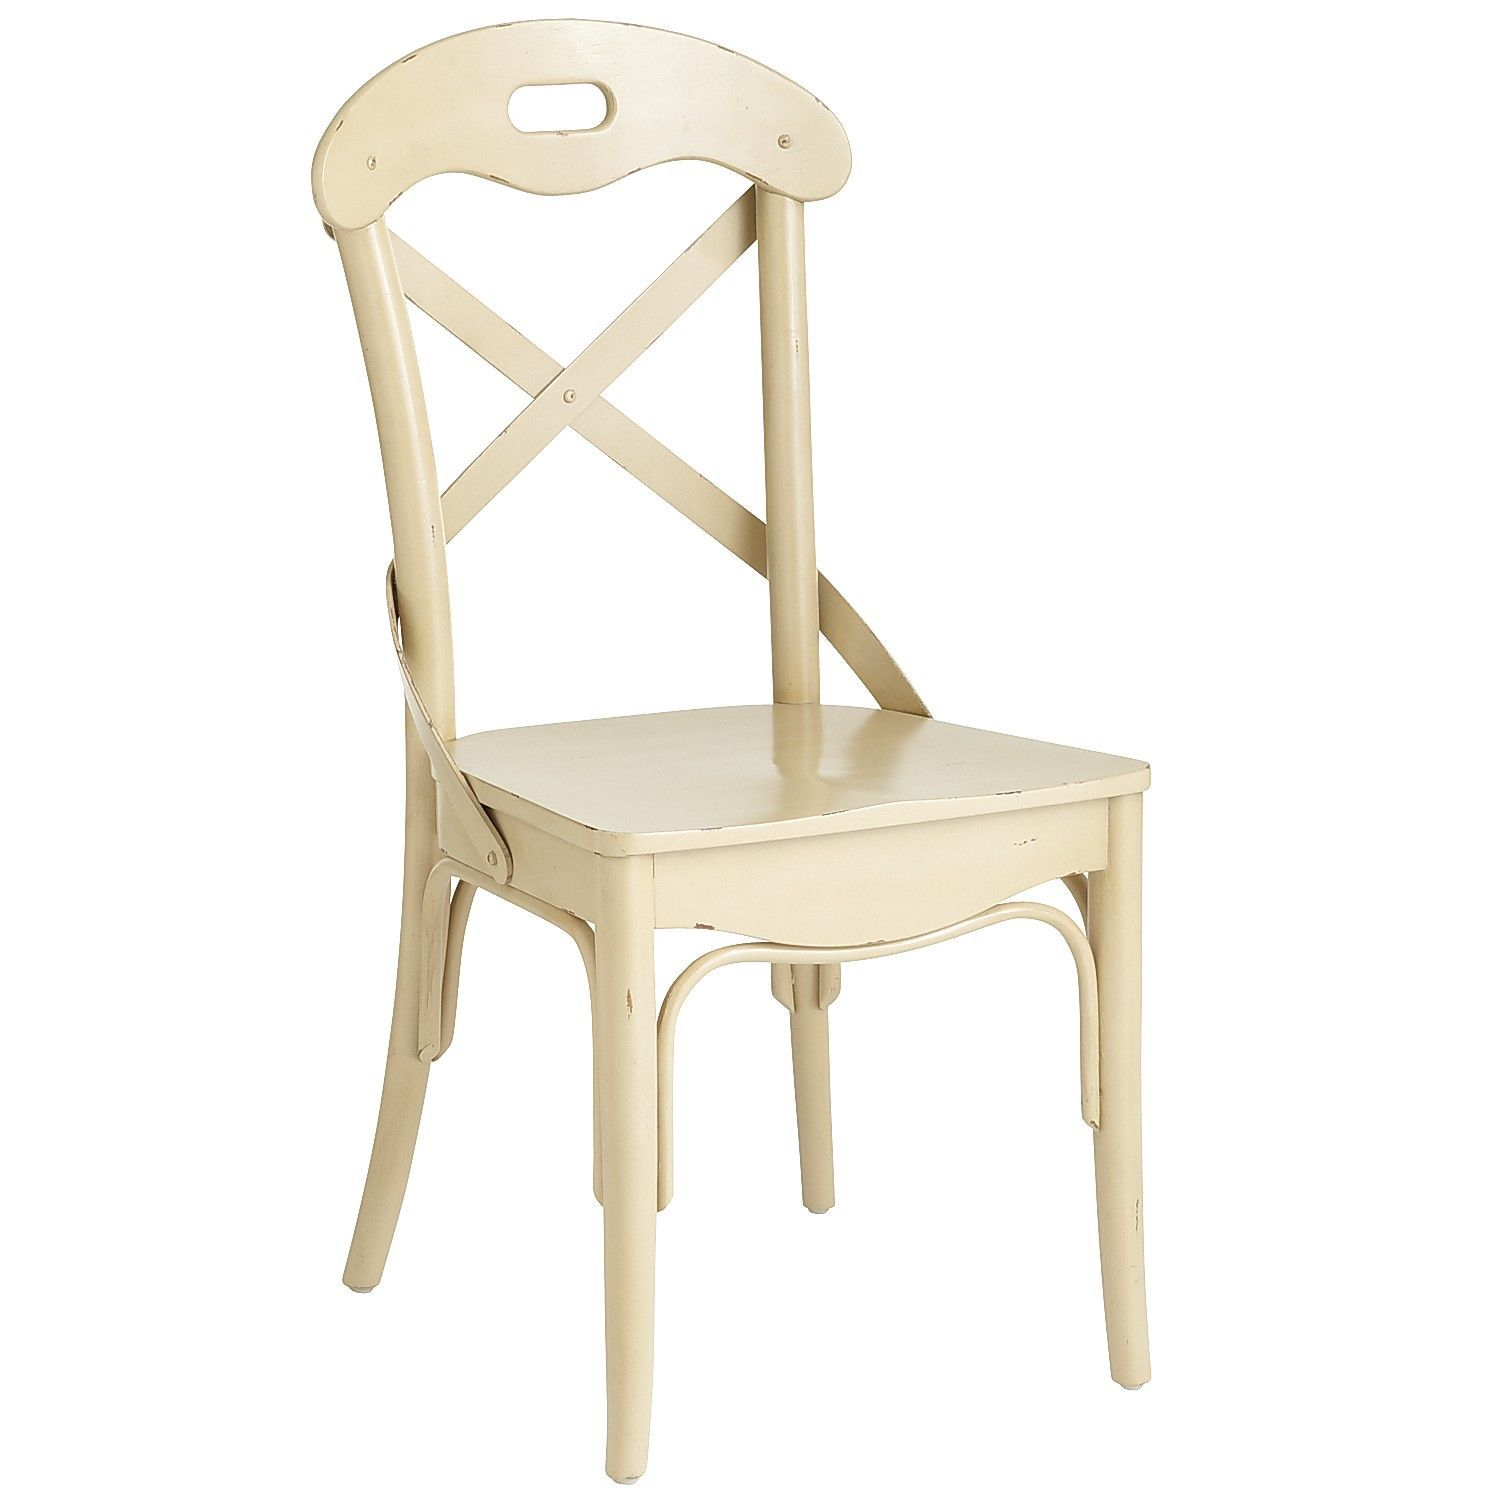 Pier 1: Curved Back Dining Chair - Distressed Ivory | Formal Dinning ...